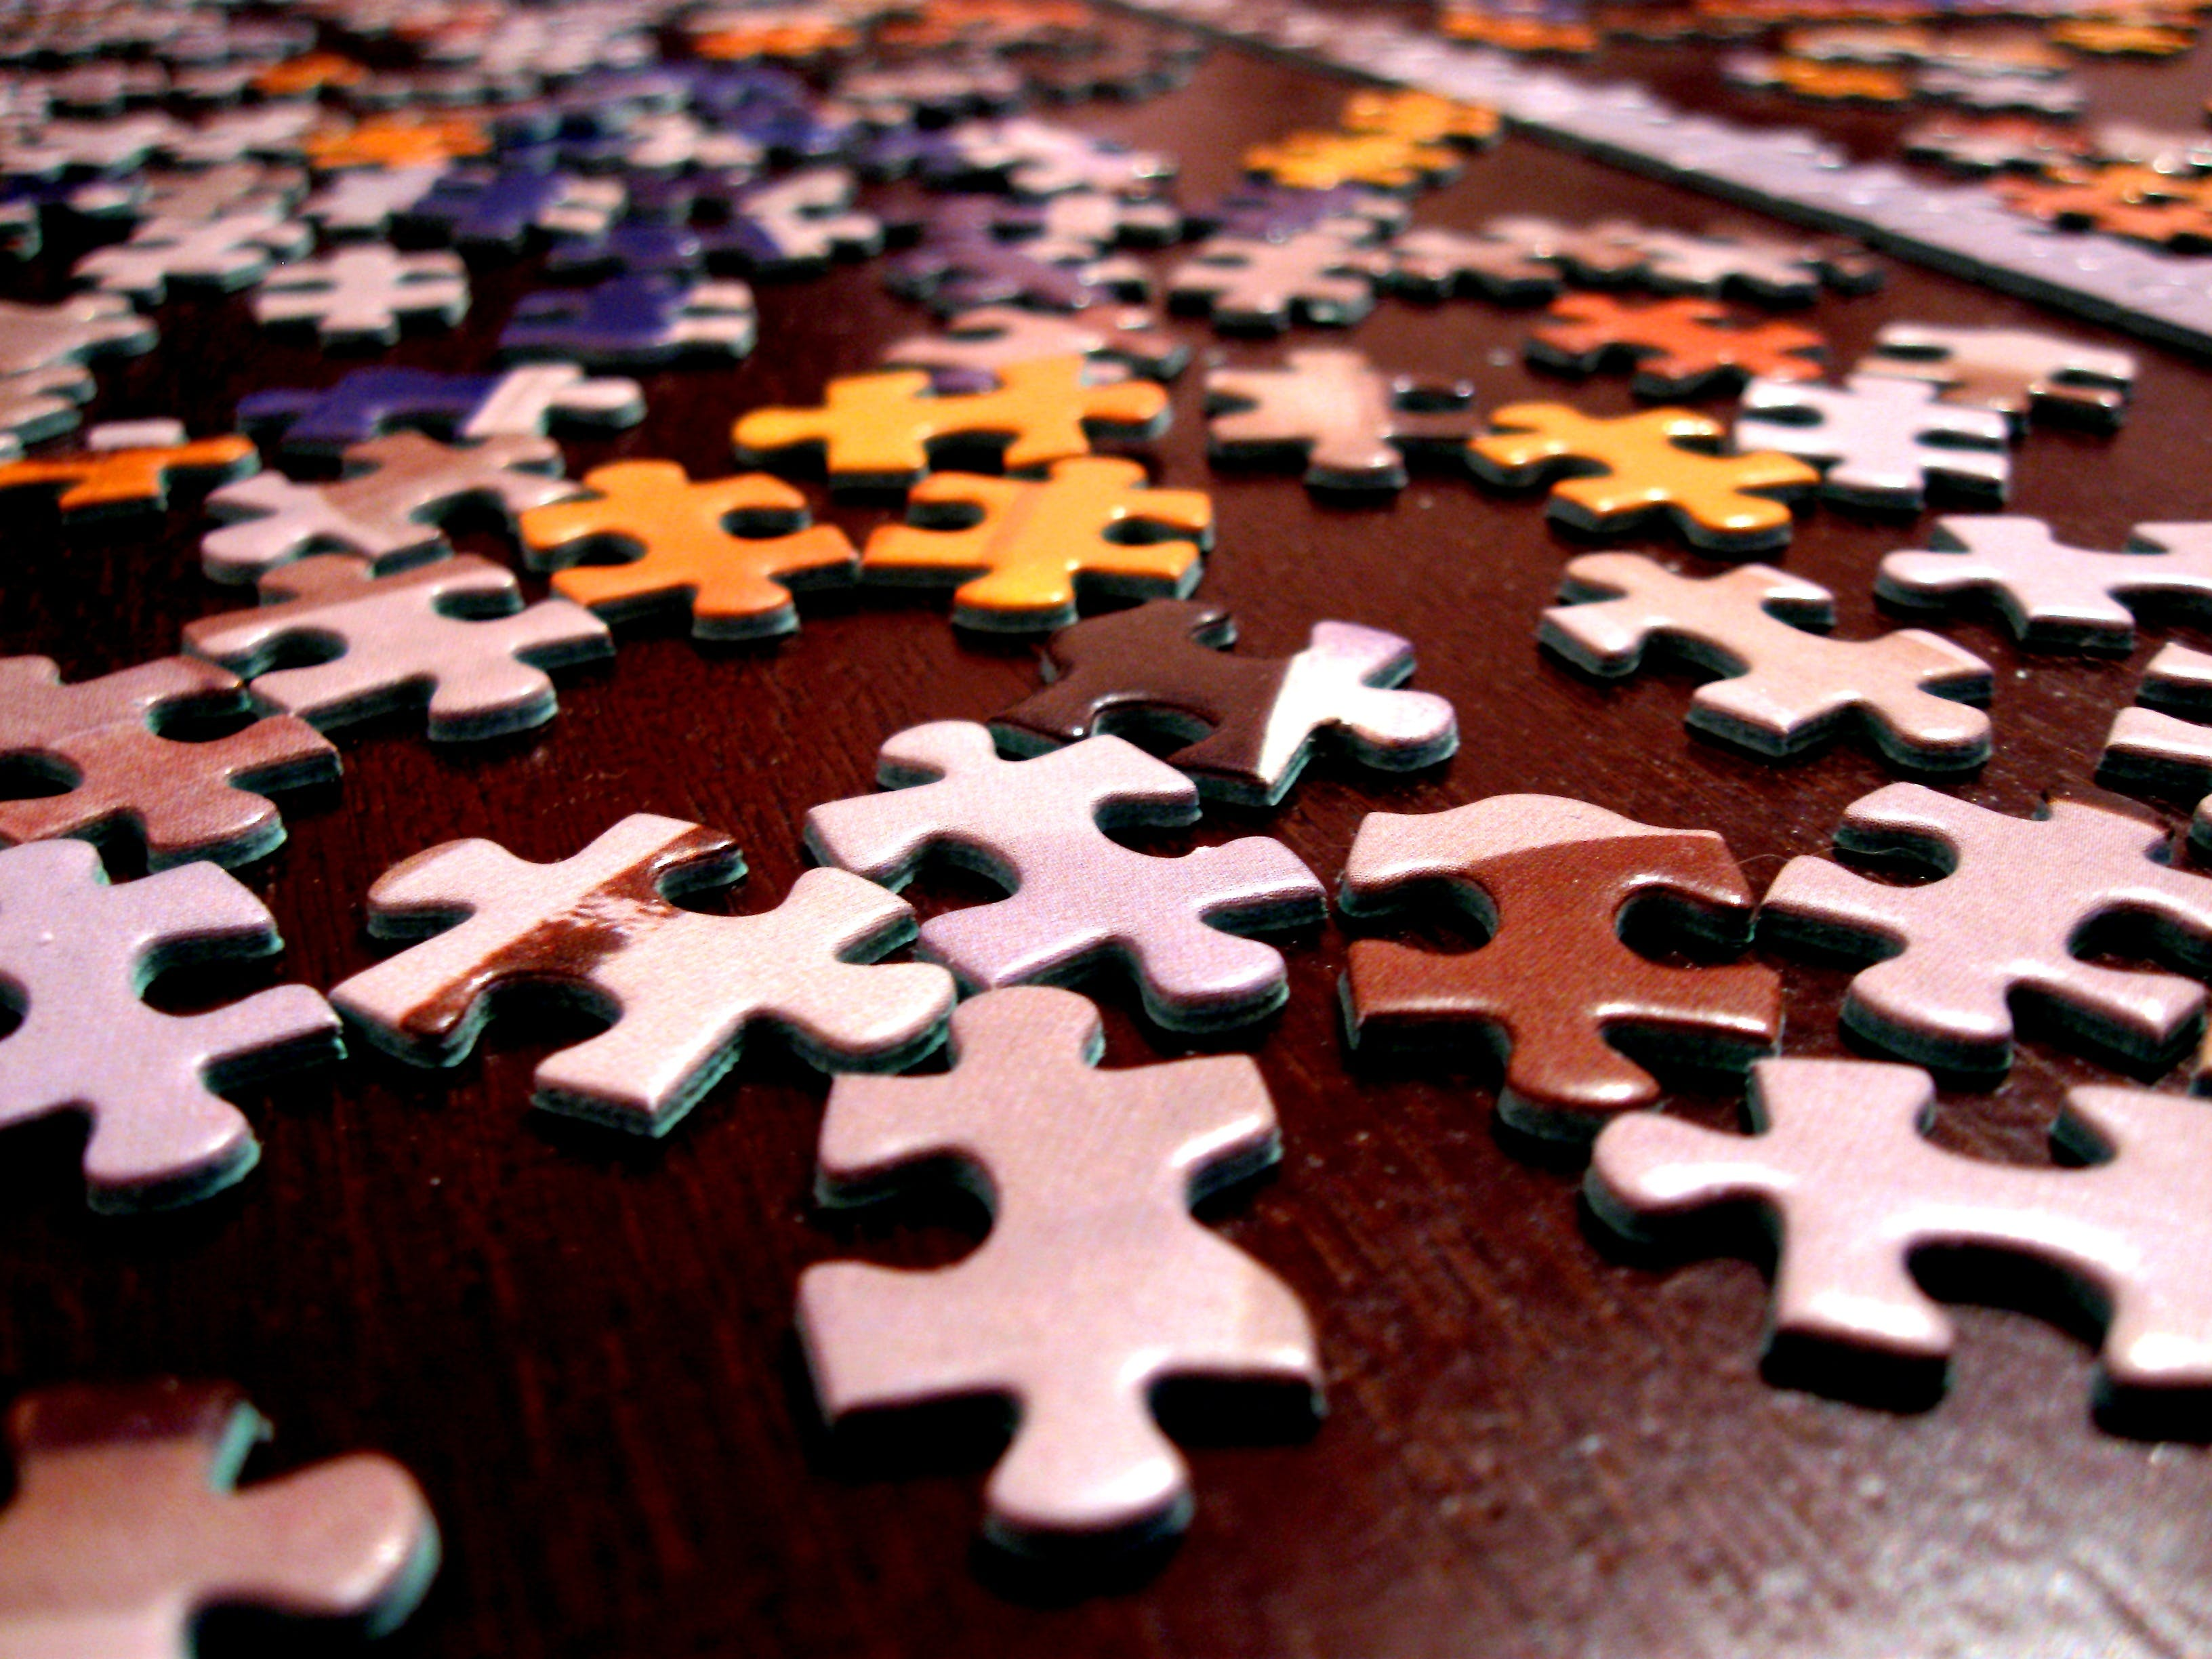 Free stock photo of creativity, game, challenge, puzzle